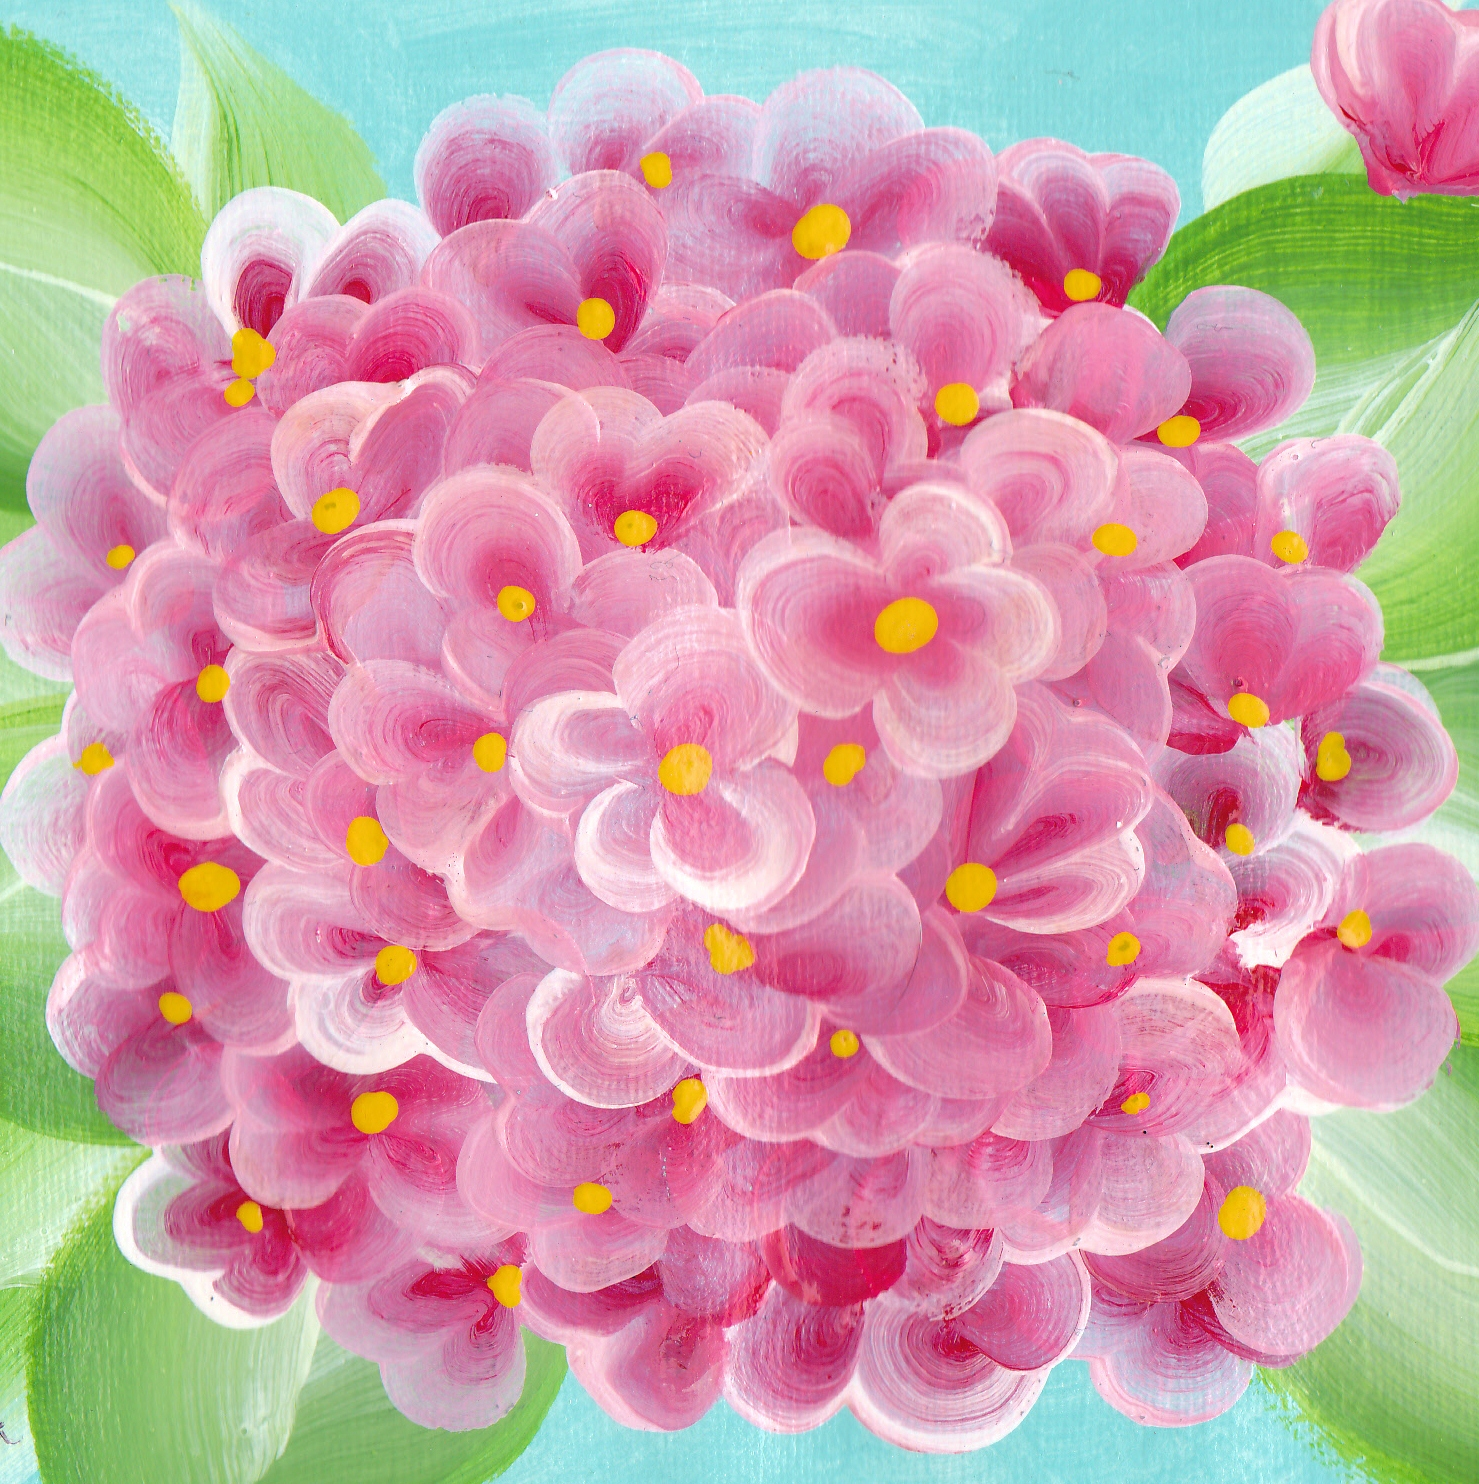 Painting hydrangeas with one stroke lynda makara for How to paint simple watercolor flowers